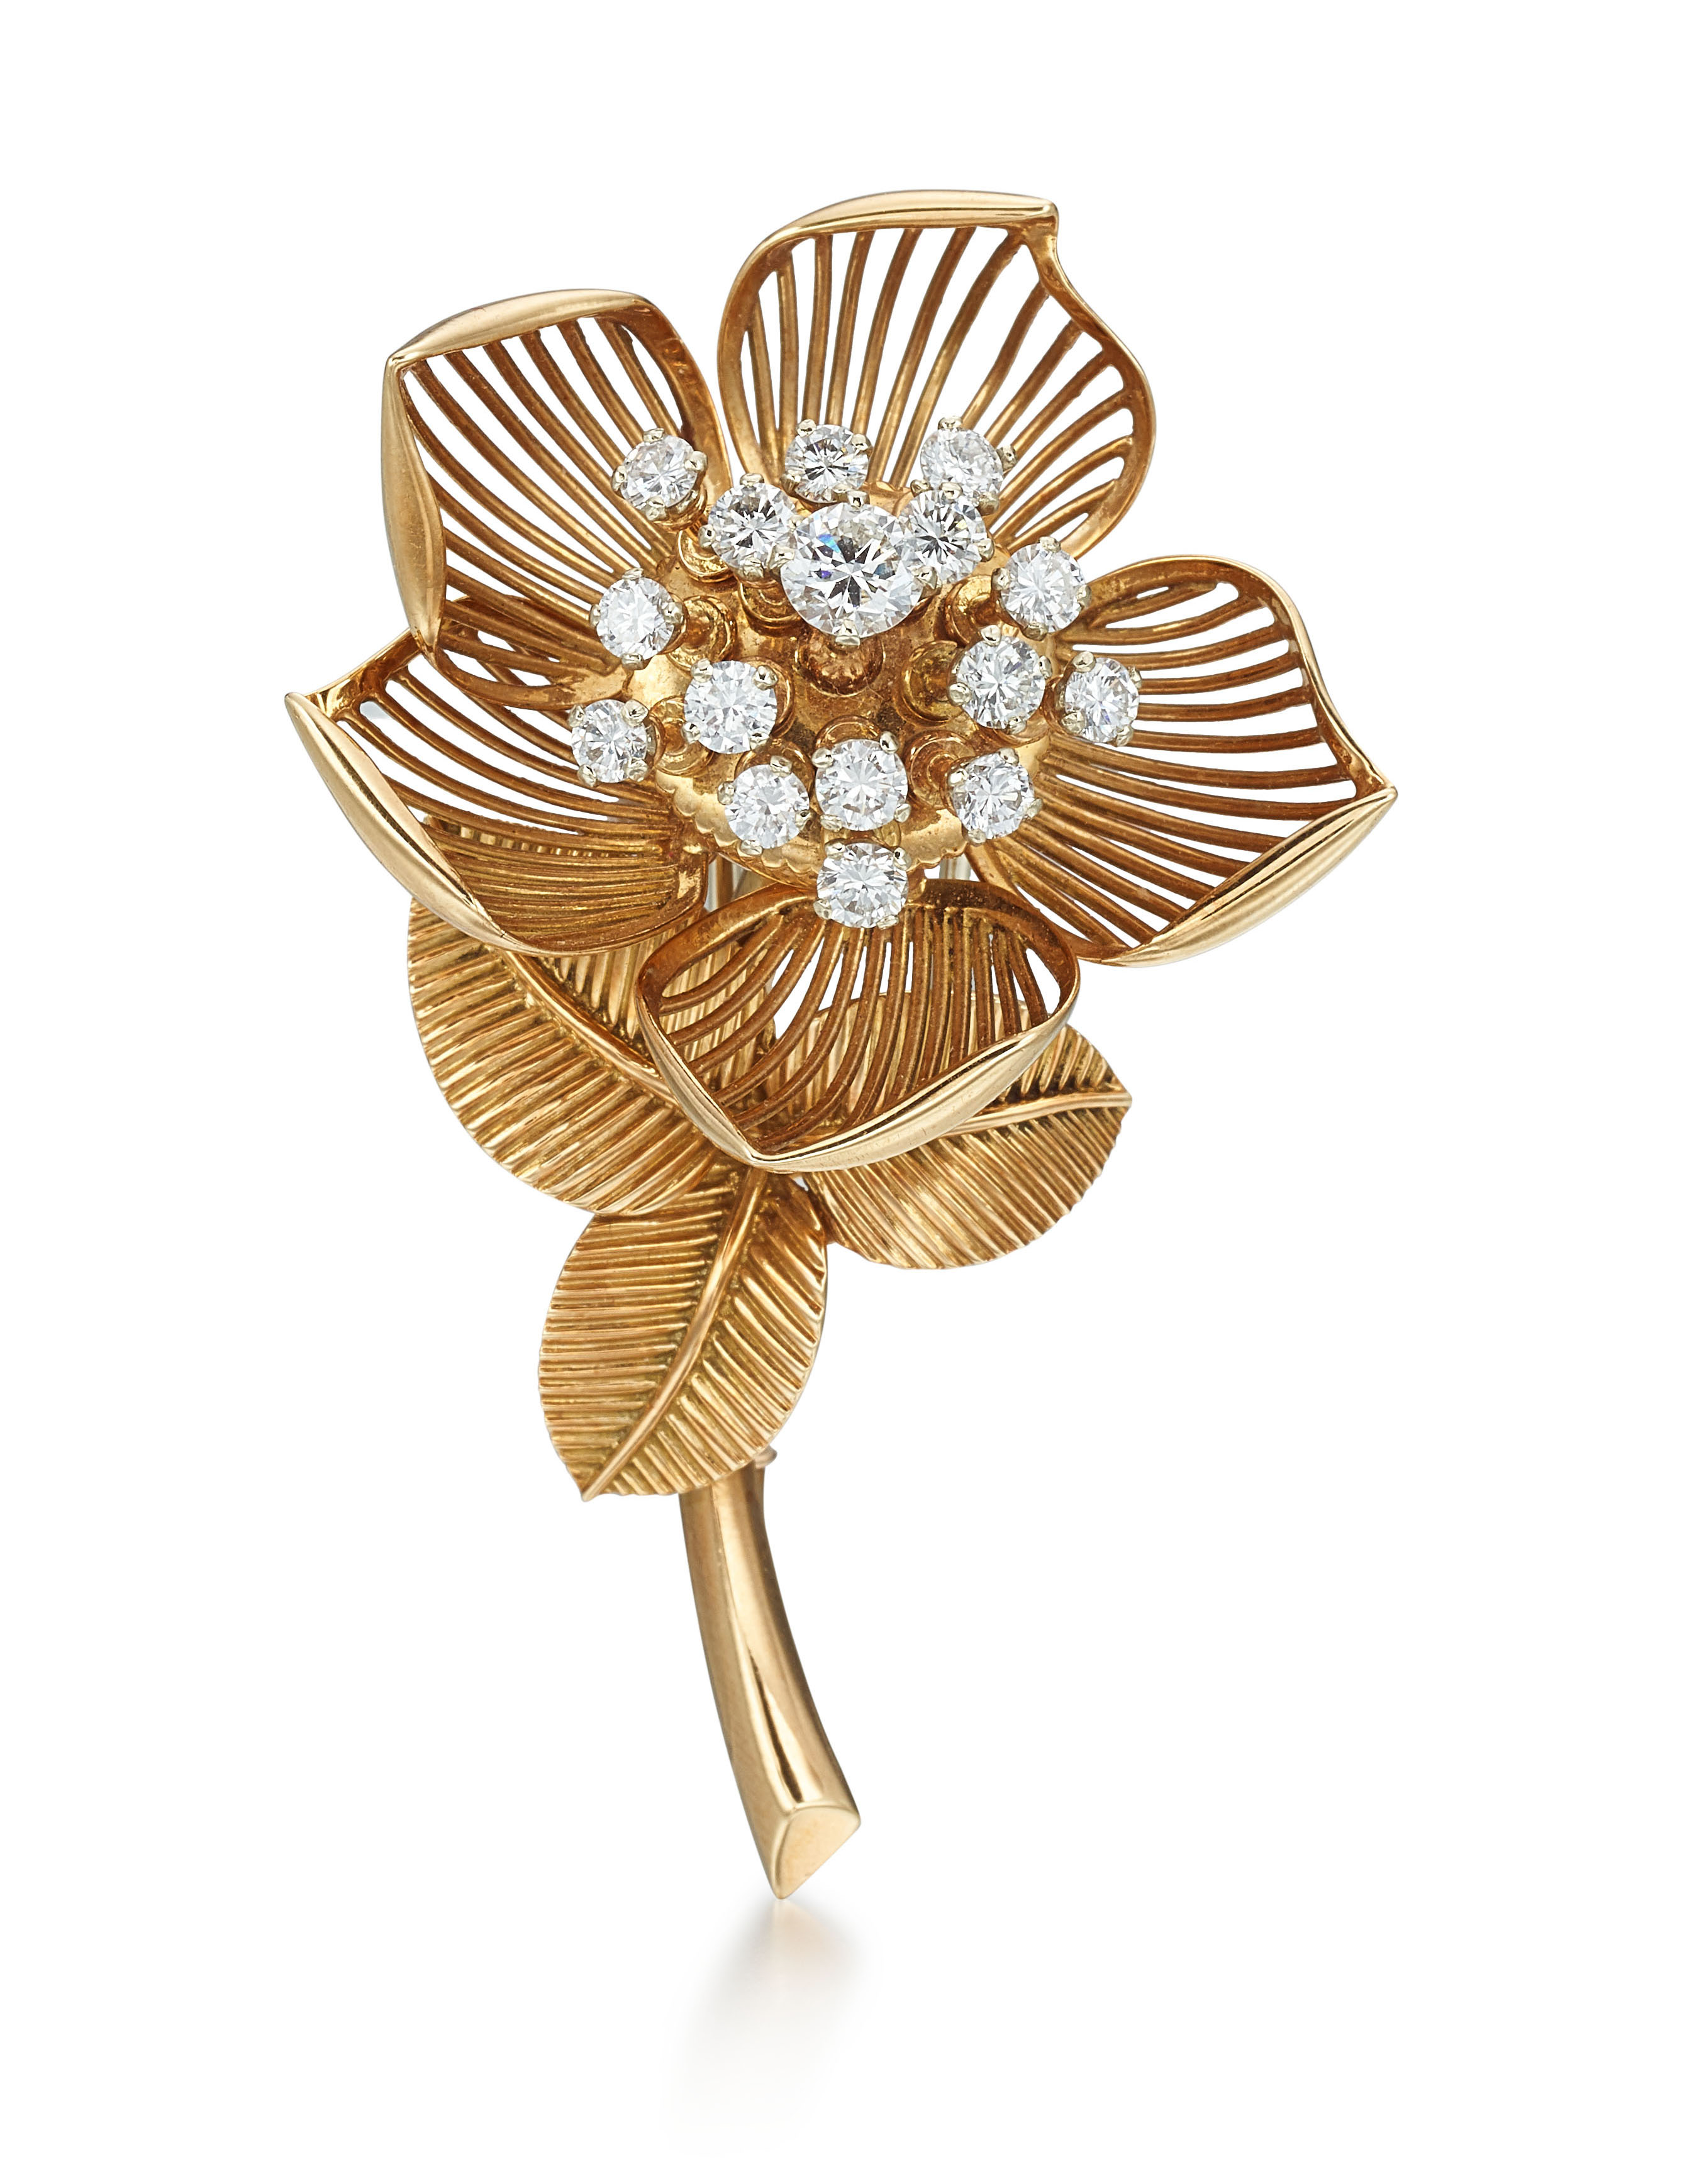 View full screen - View 1 of Lot 9130. GOLD AND DIAMOND BROOCH, MELLERIO | K金 配 鑽石 別針, Mellerio.